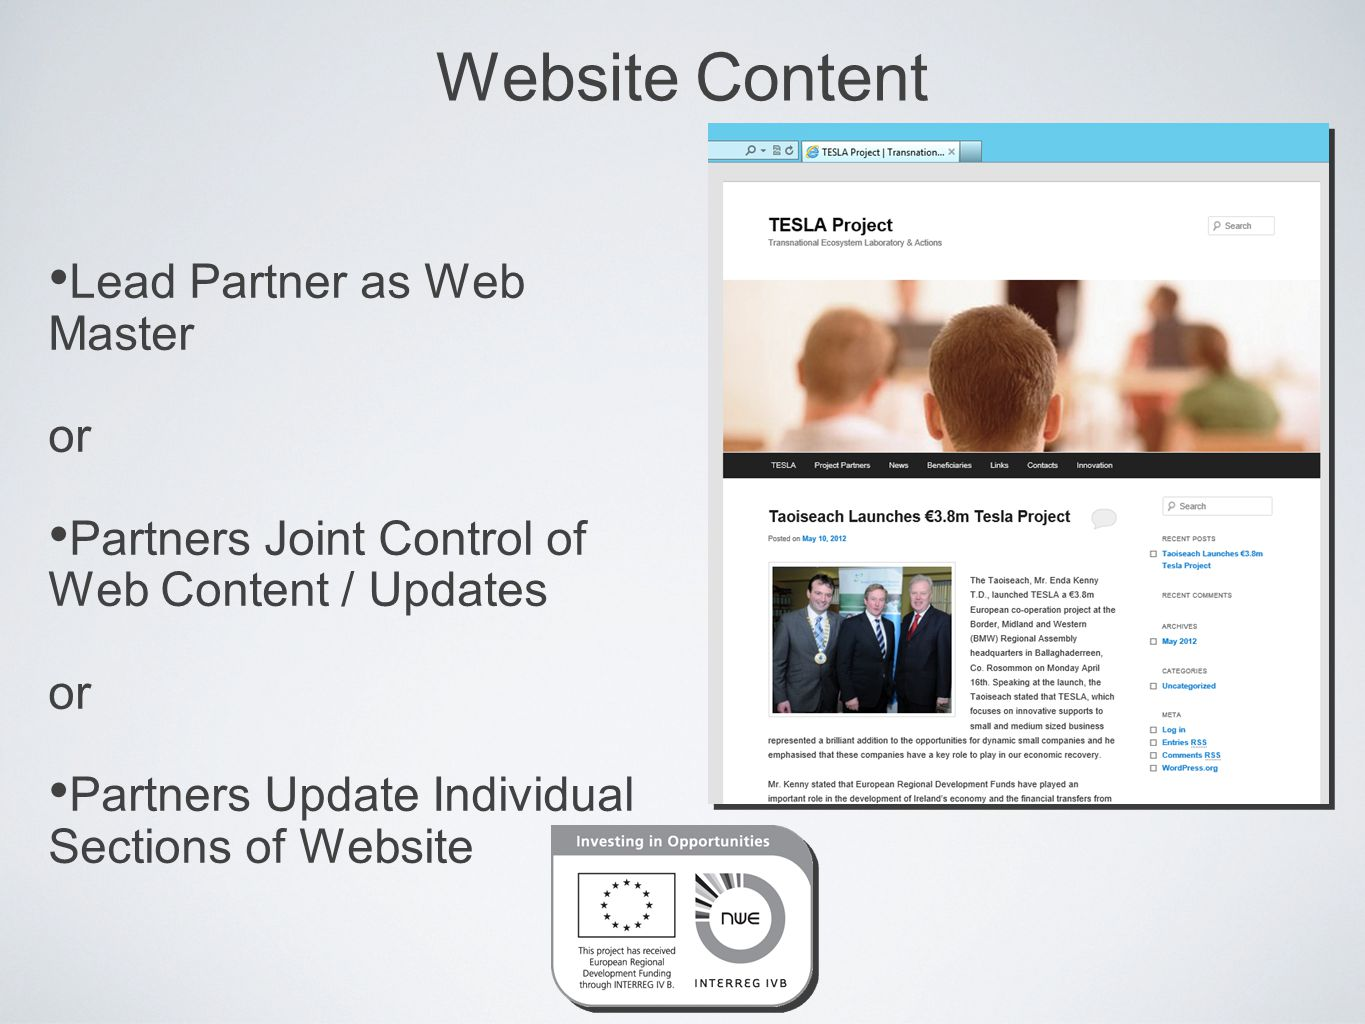 Website Content Lead Partner as Web Master or Partners Joint Control of Web Content / Updates or Partners Update Individual Sections of Website